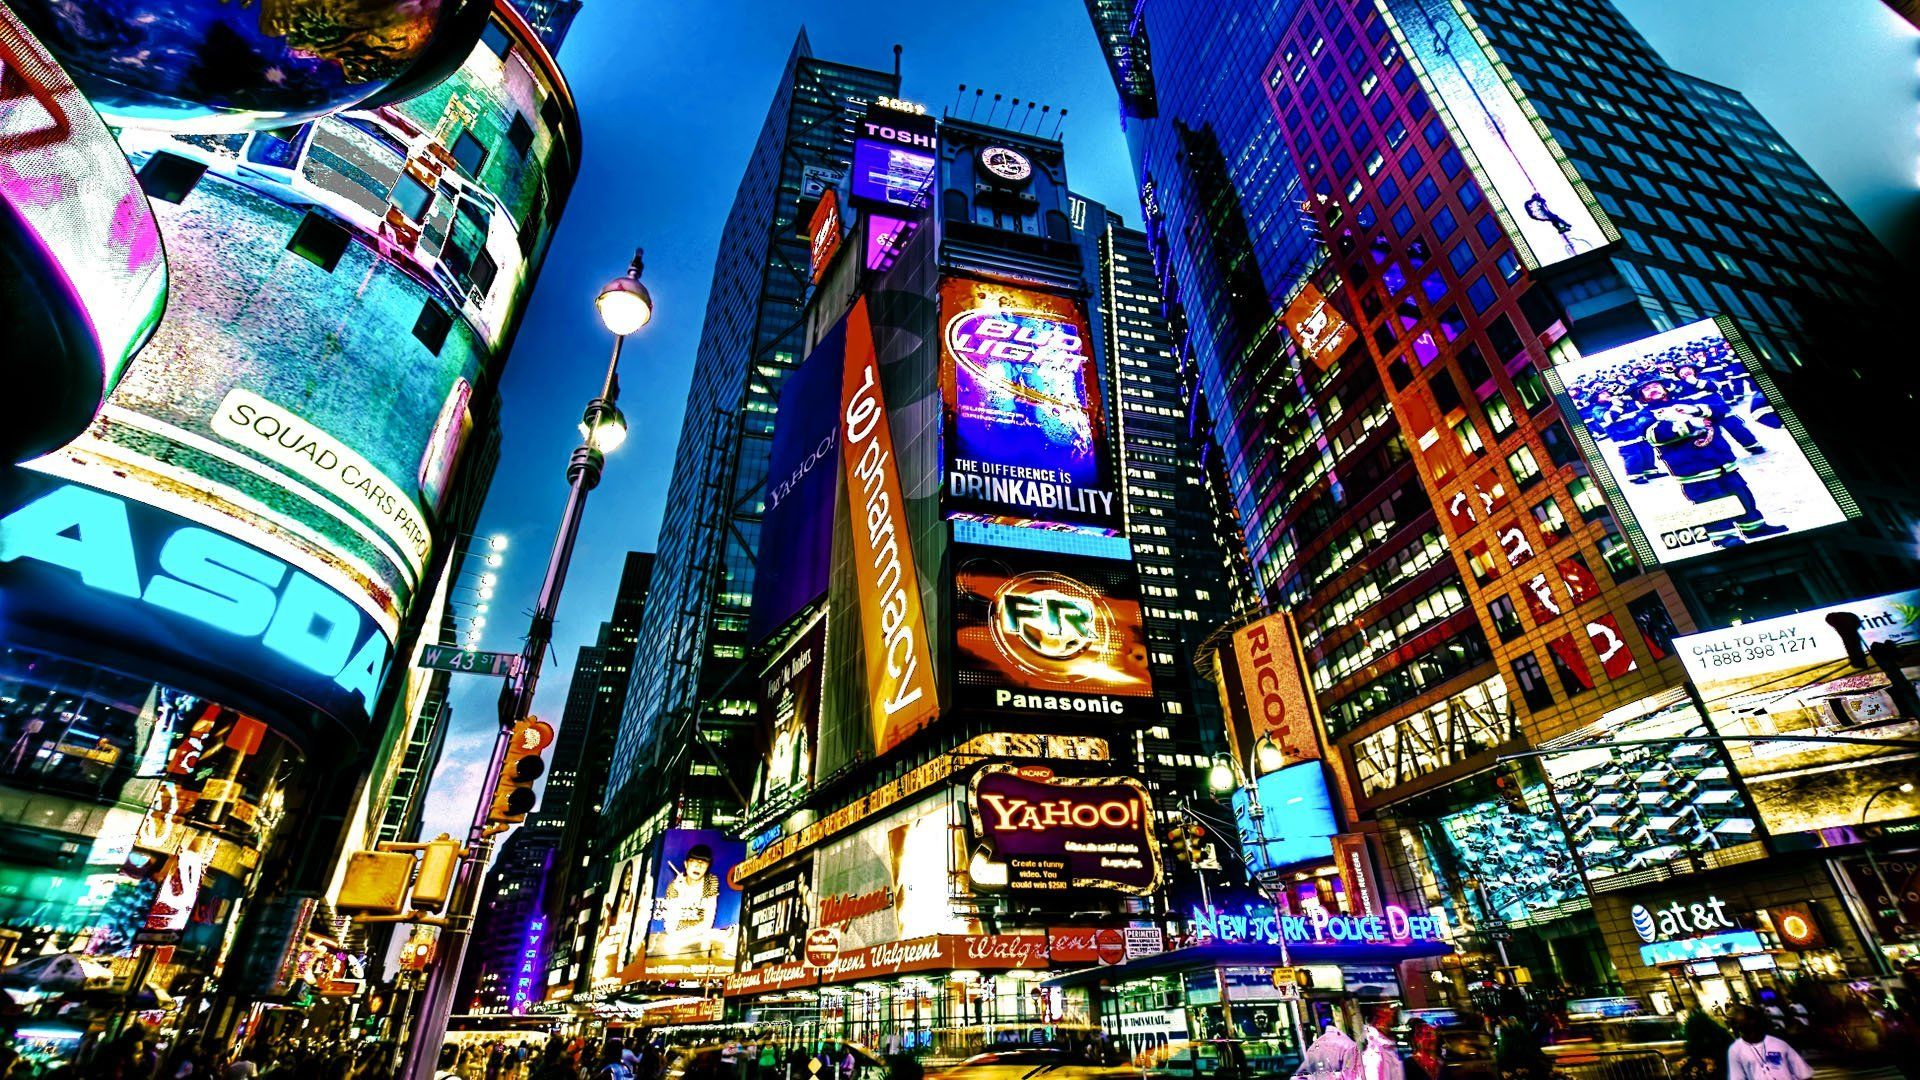 5616x3744 filethe night before new years eve high above times squarejpg